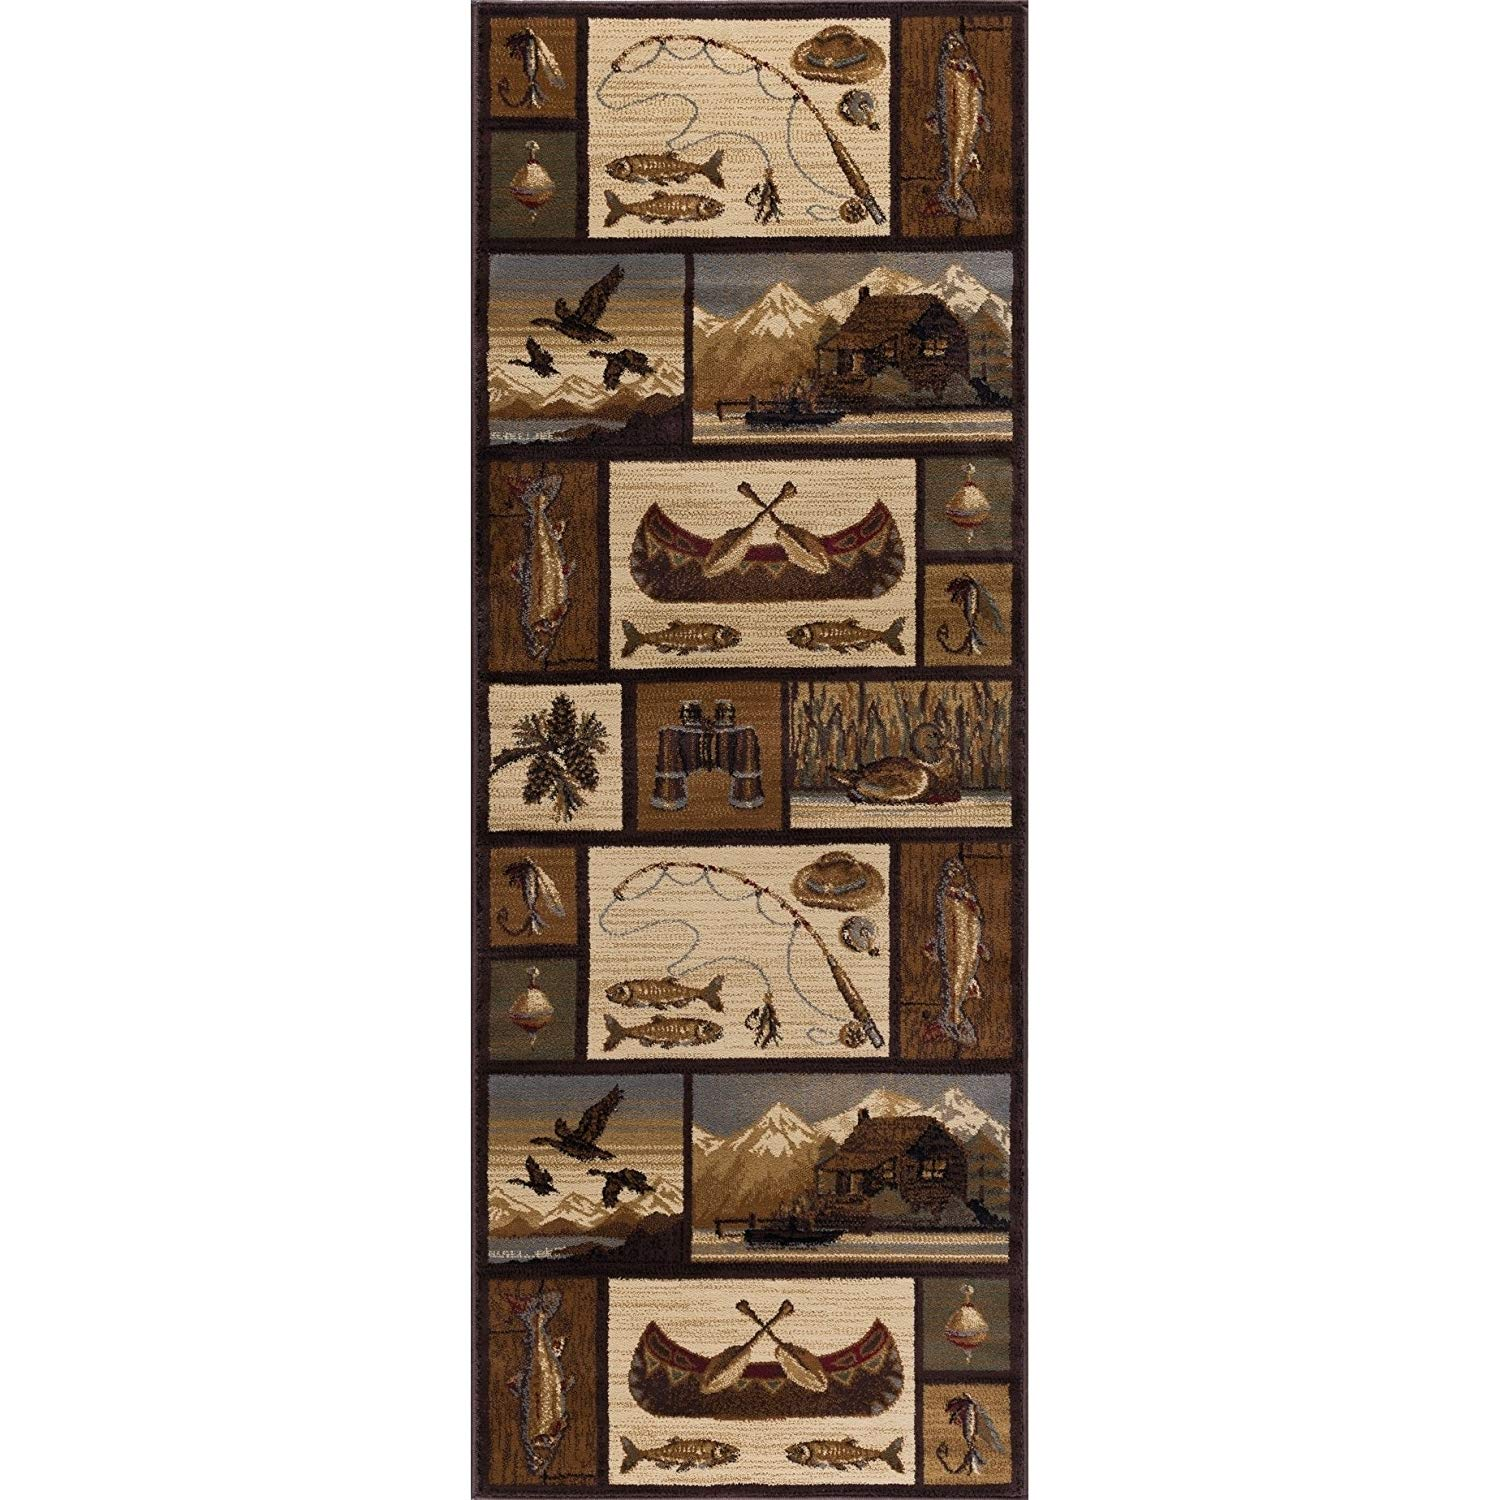 N2 2'7 x 7'3 Brown Tan Hunting Theme Runner Rug Rectangle, Indoor Grey White Fishing Canoe Pattern Hallway Carpet Wildlife Themed Entryway Lodge Cabins Ducks Fish Entrance Way, Polypropylene